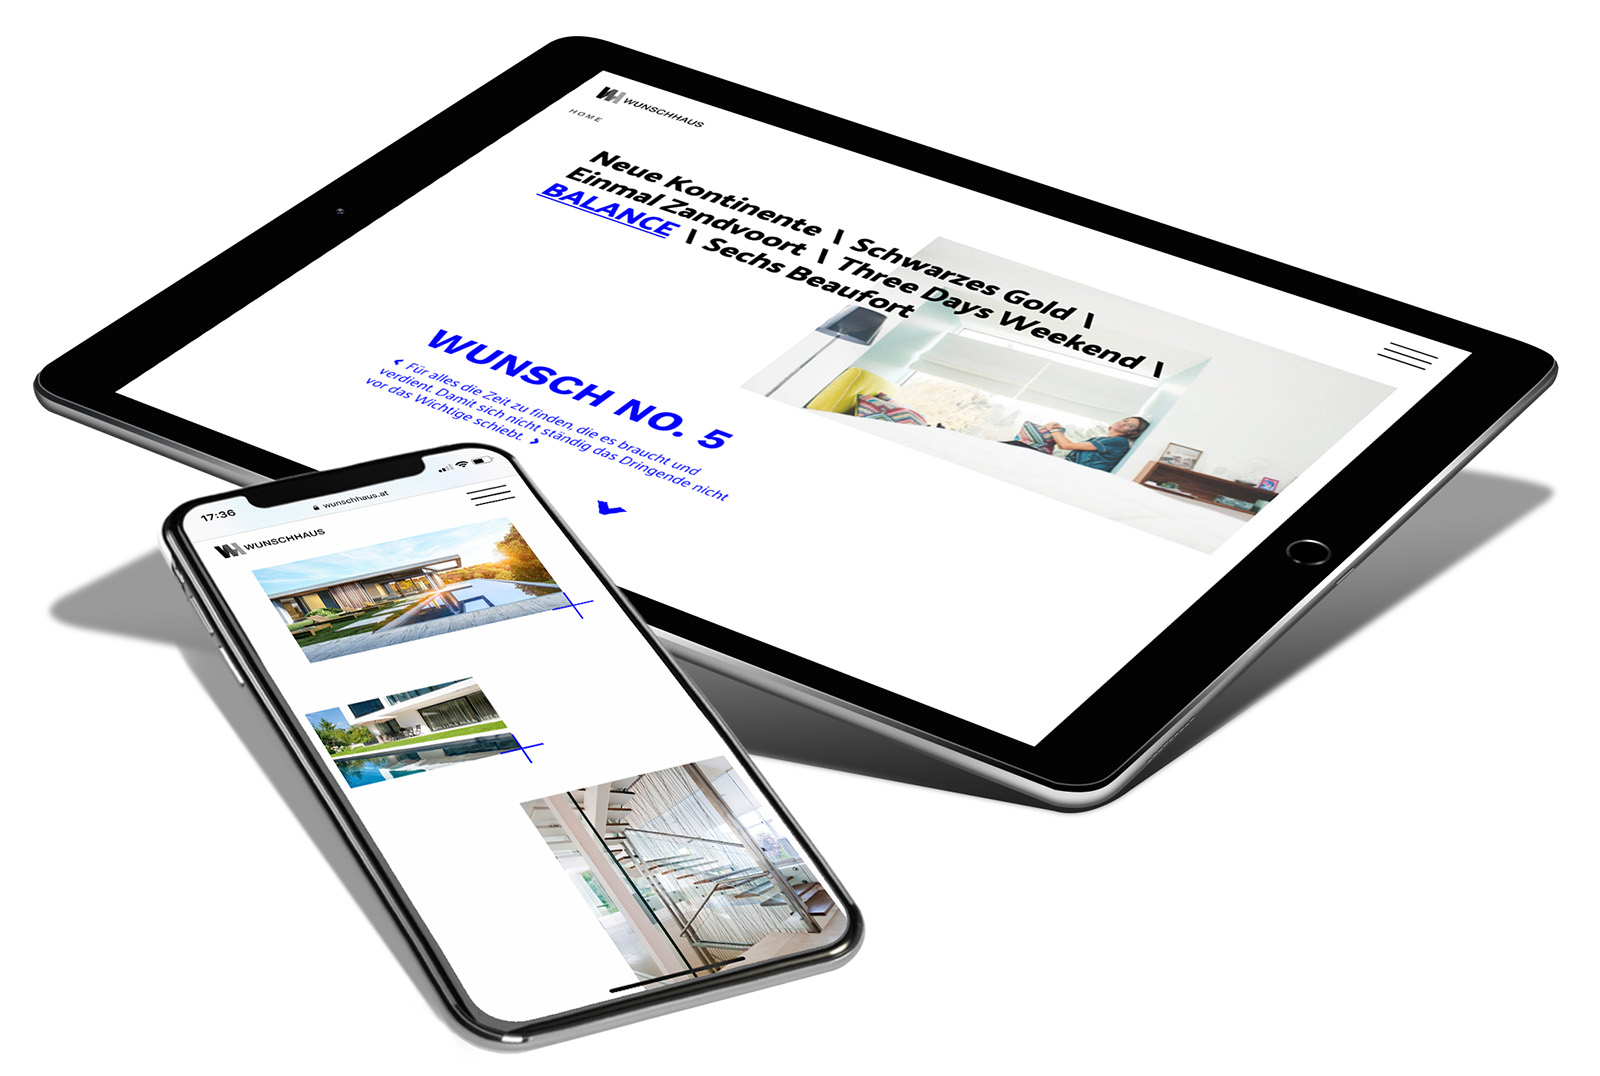 Wunschhaus Website-Screens am Handy und Tablet